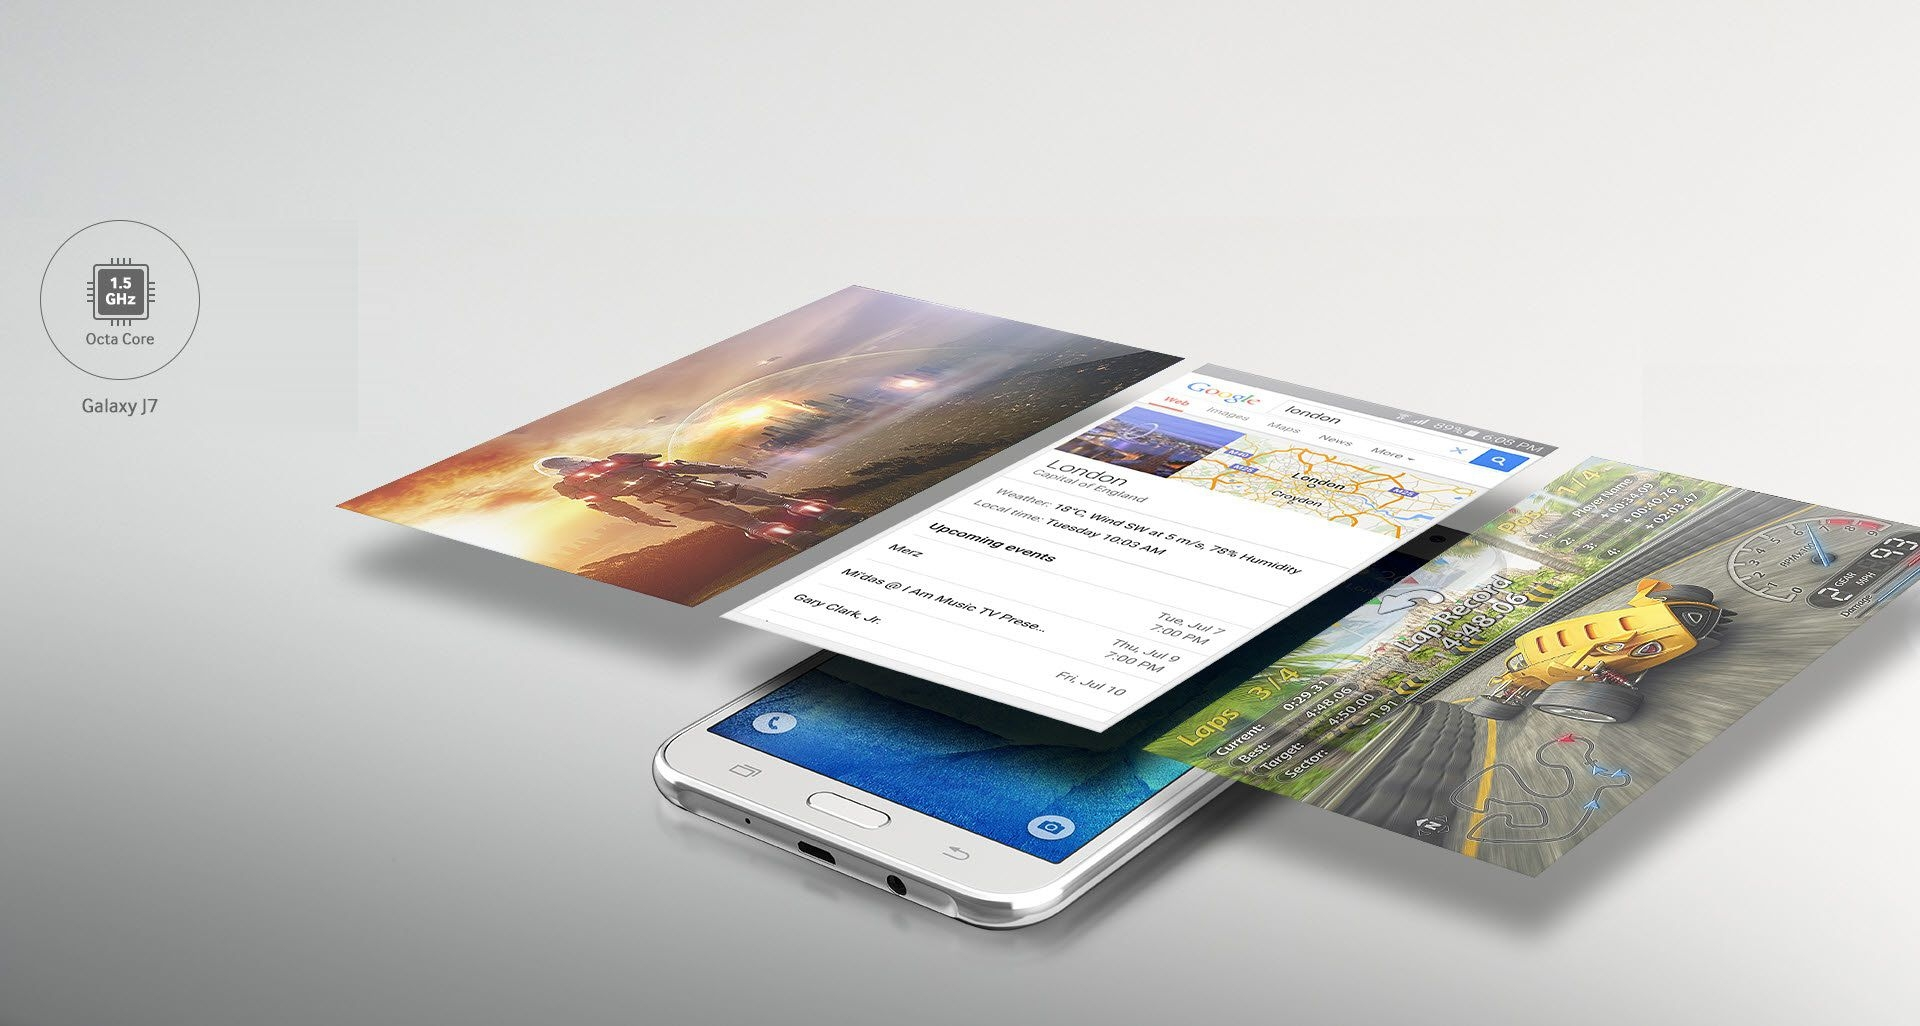 Galaxy J5 Smartphone Features